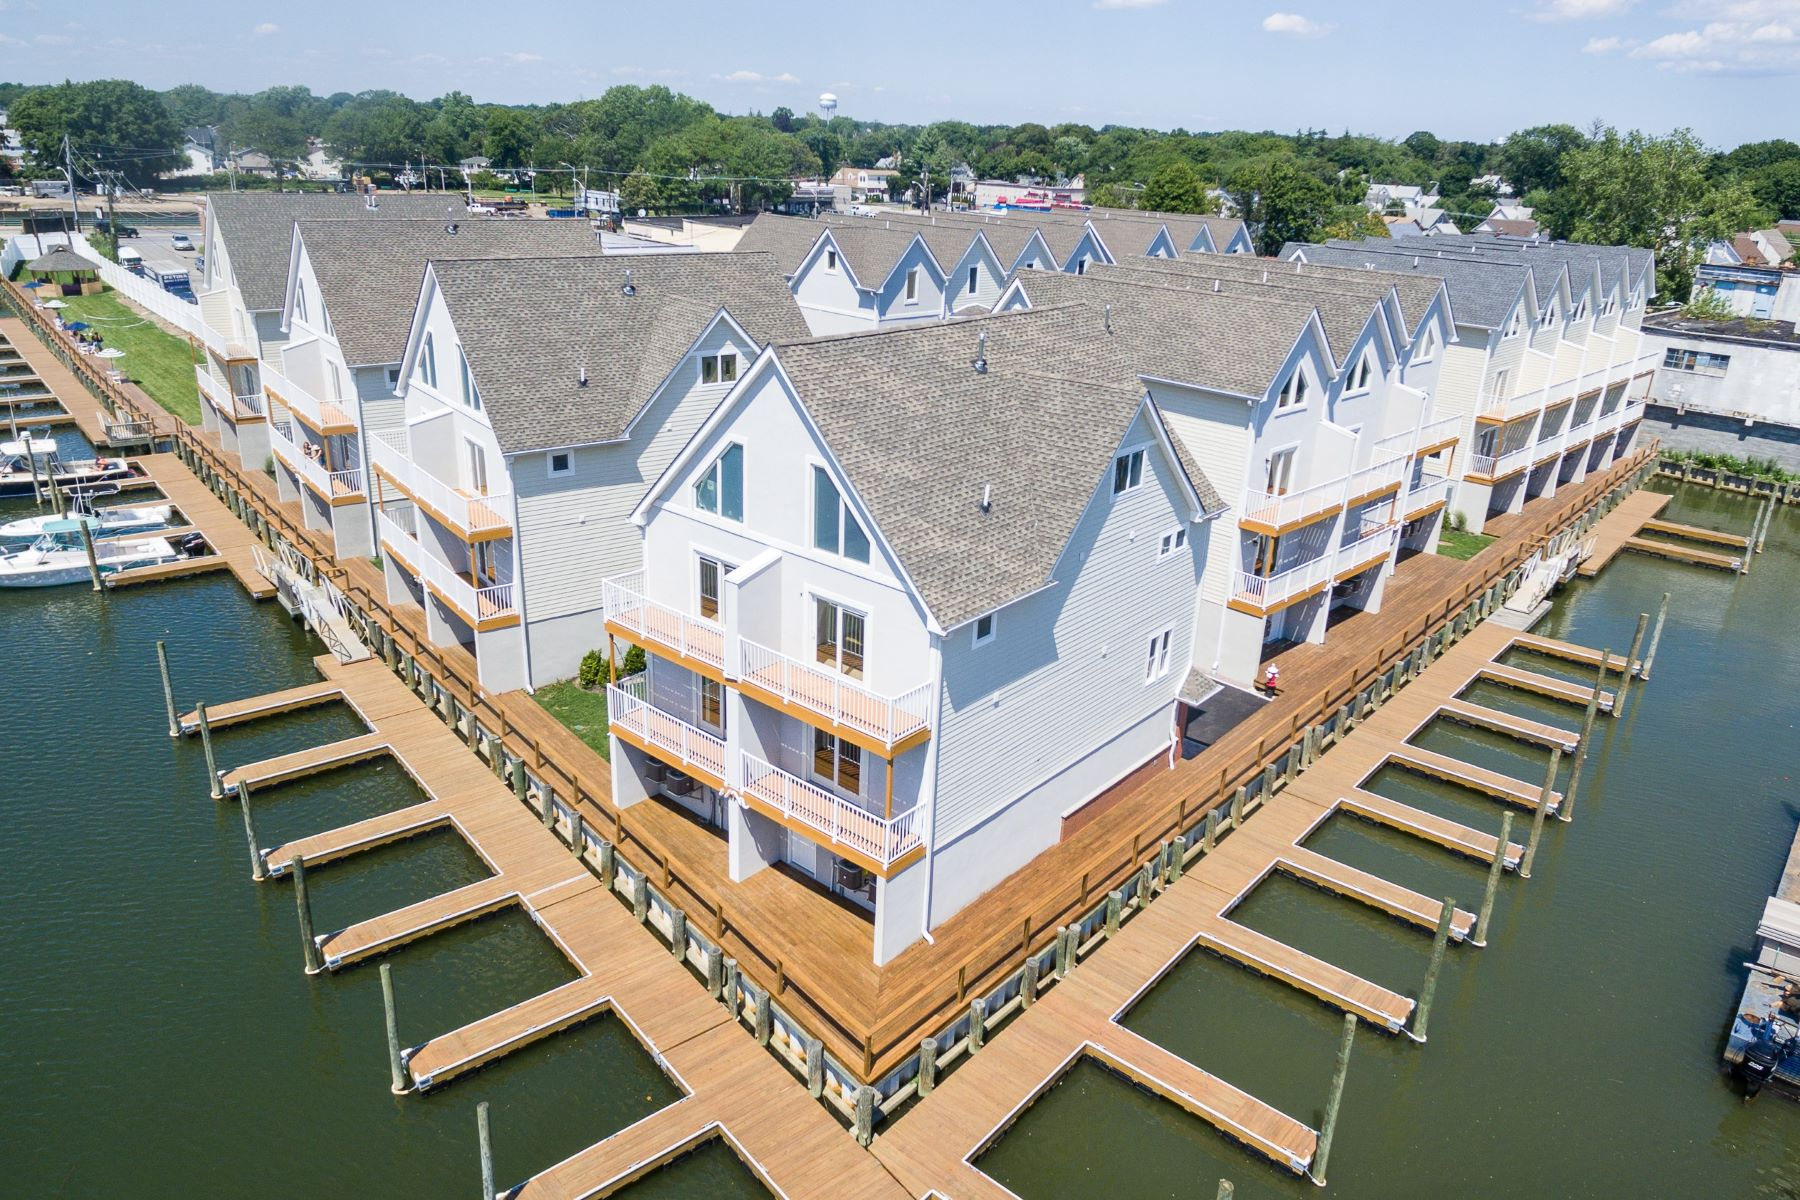 Condominium for Sale at Condo Yachtsman's Cove 19 Freeport, New York 11520 United States